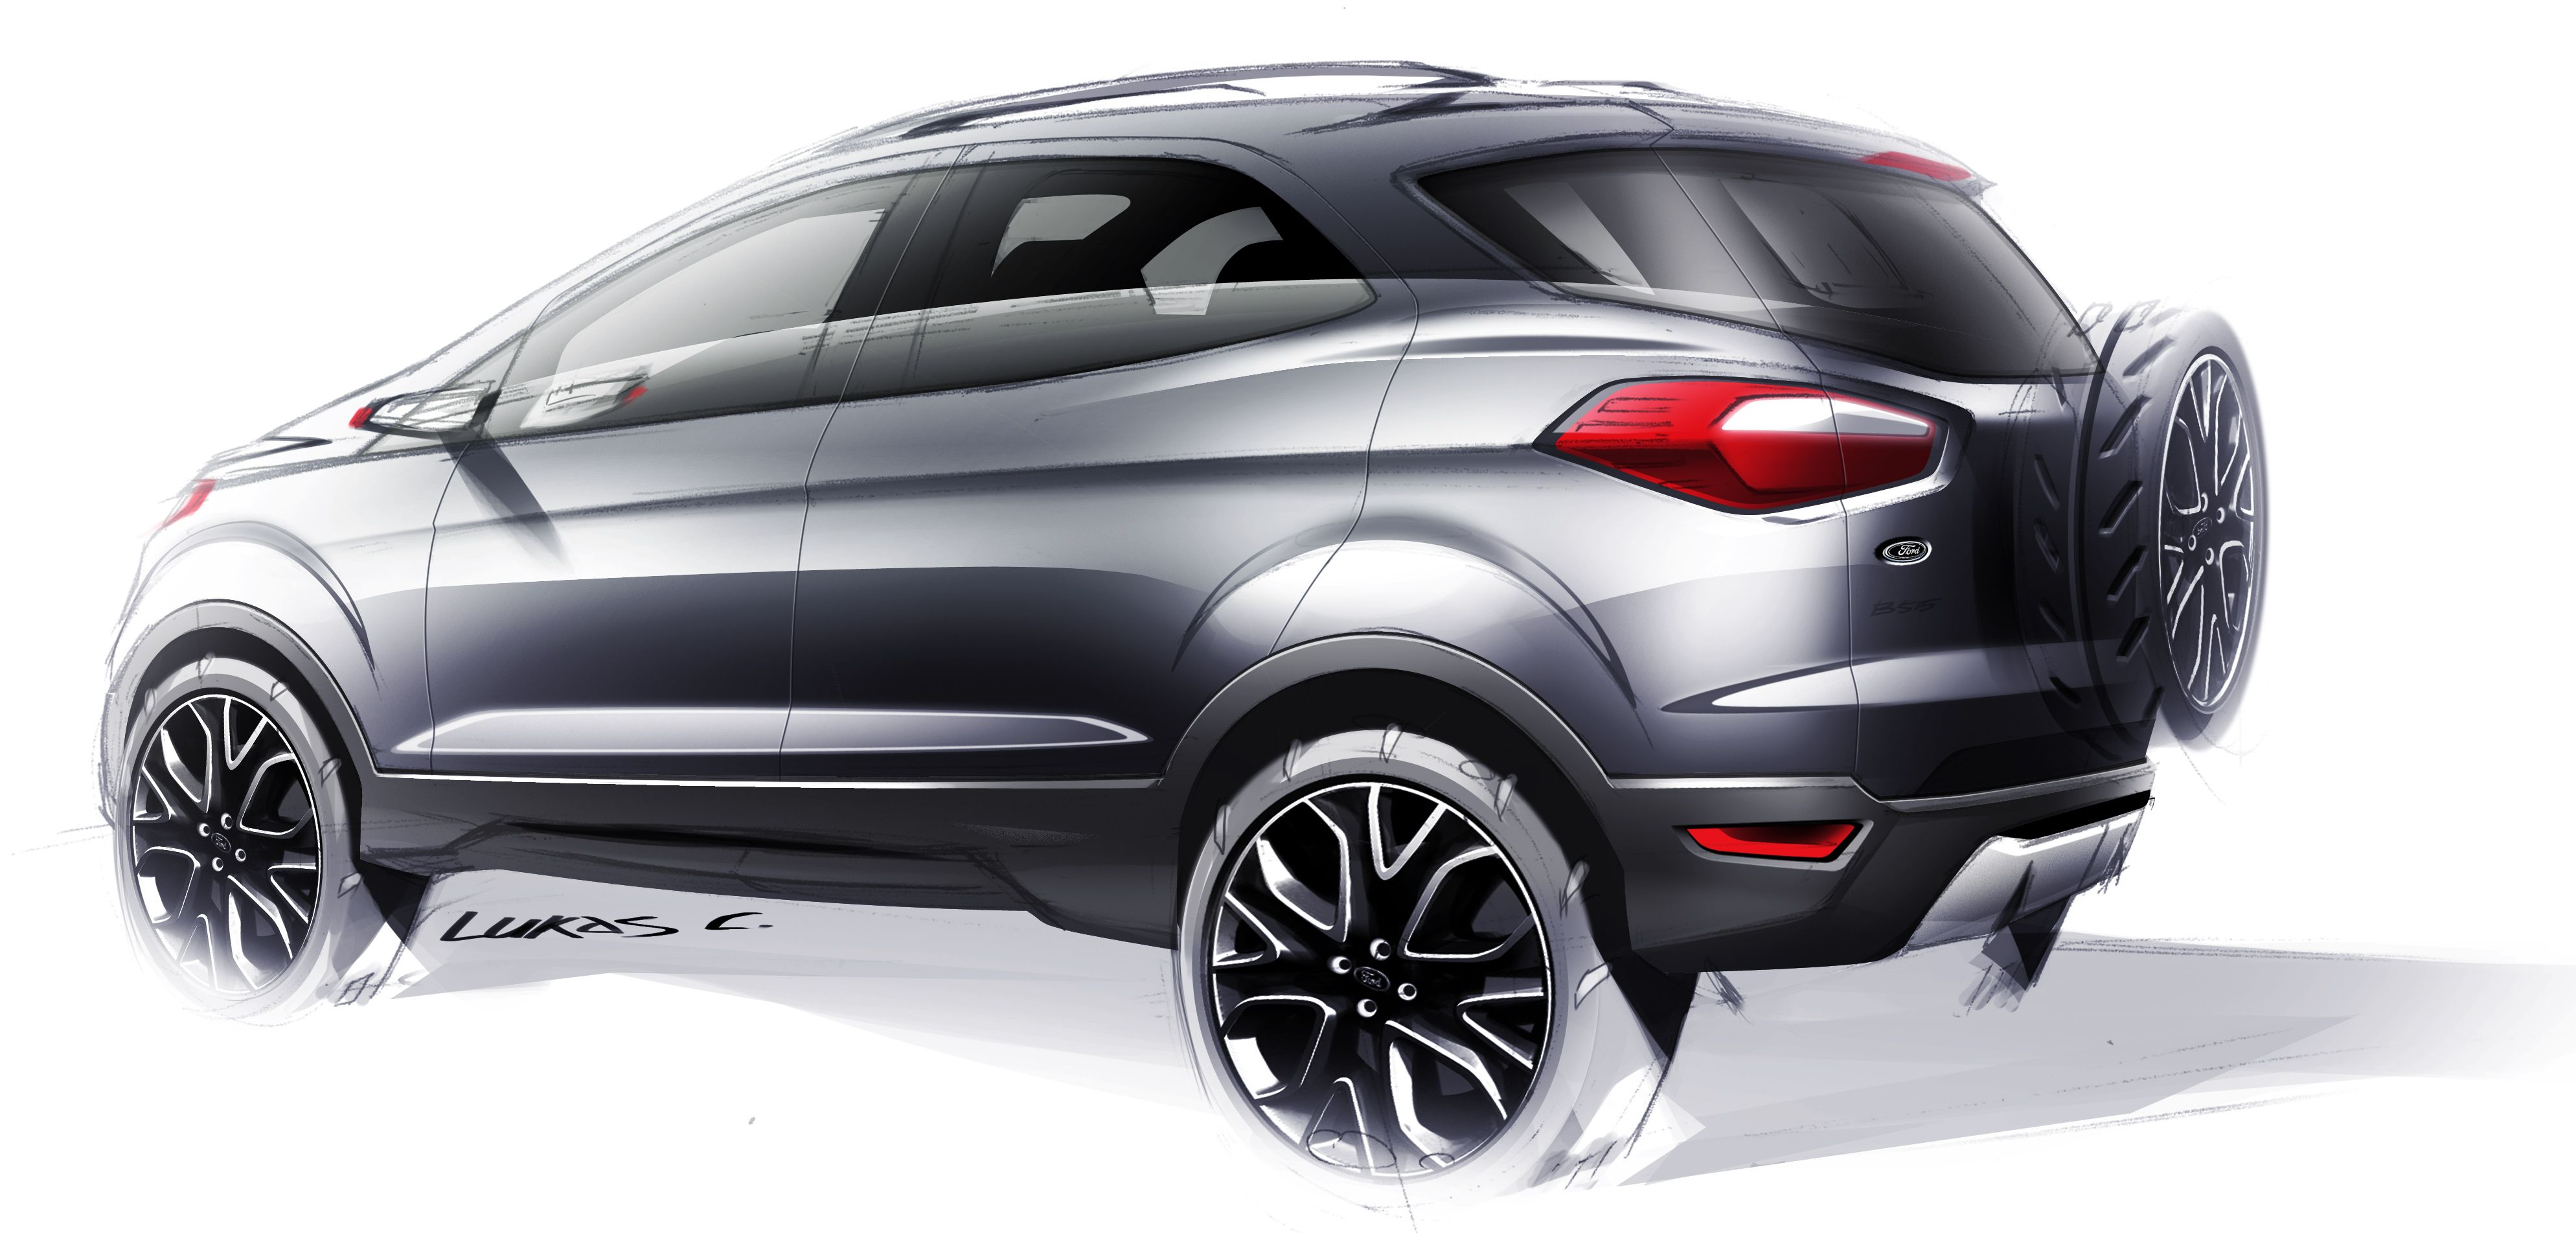 Right Click To Save As Ford Ecosport Ford Carros